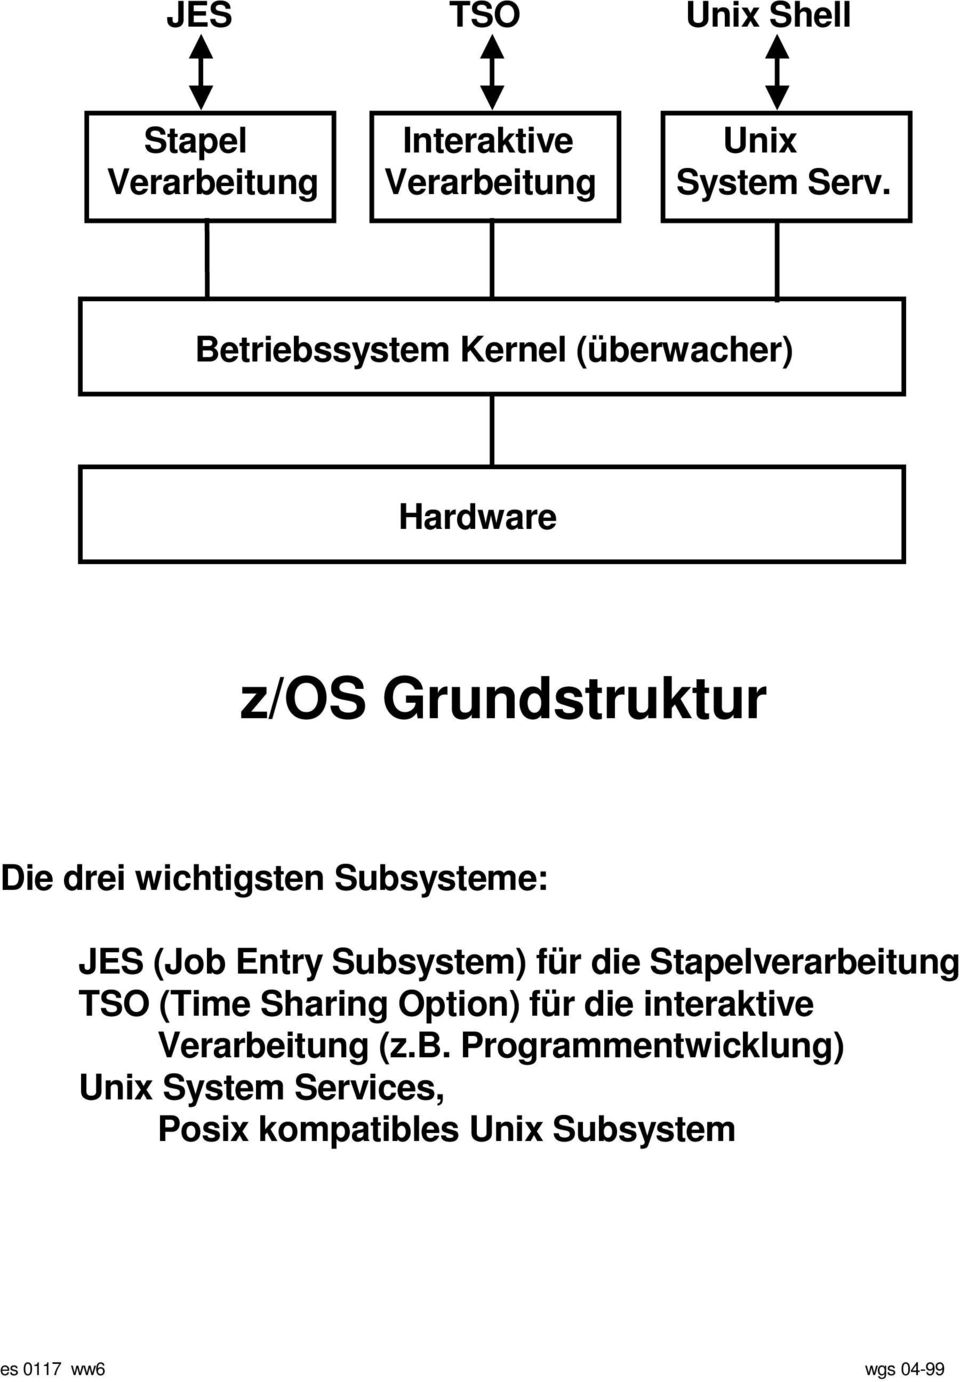 JES (Job Entry Subsystem) für die Stapelverarbeitung TSO (Time Sharing Option) für die interaktive